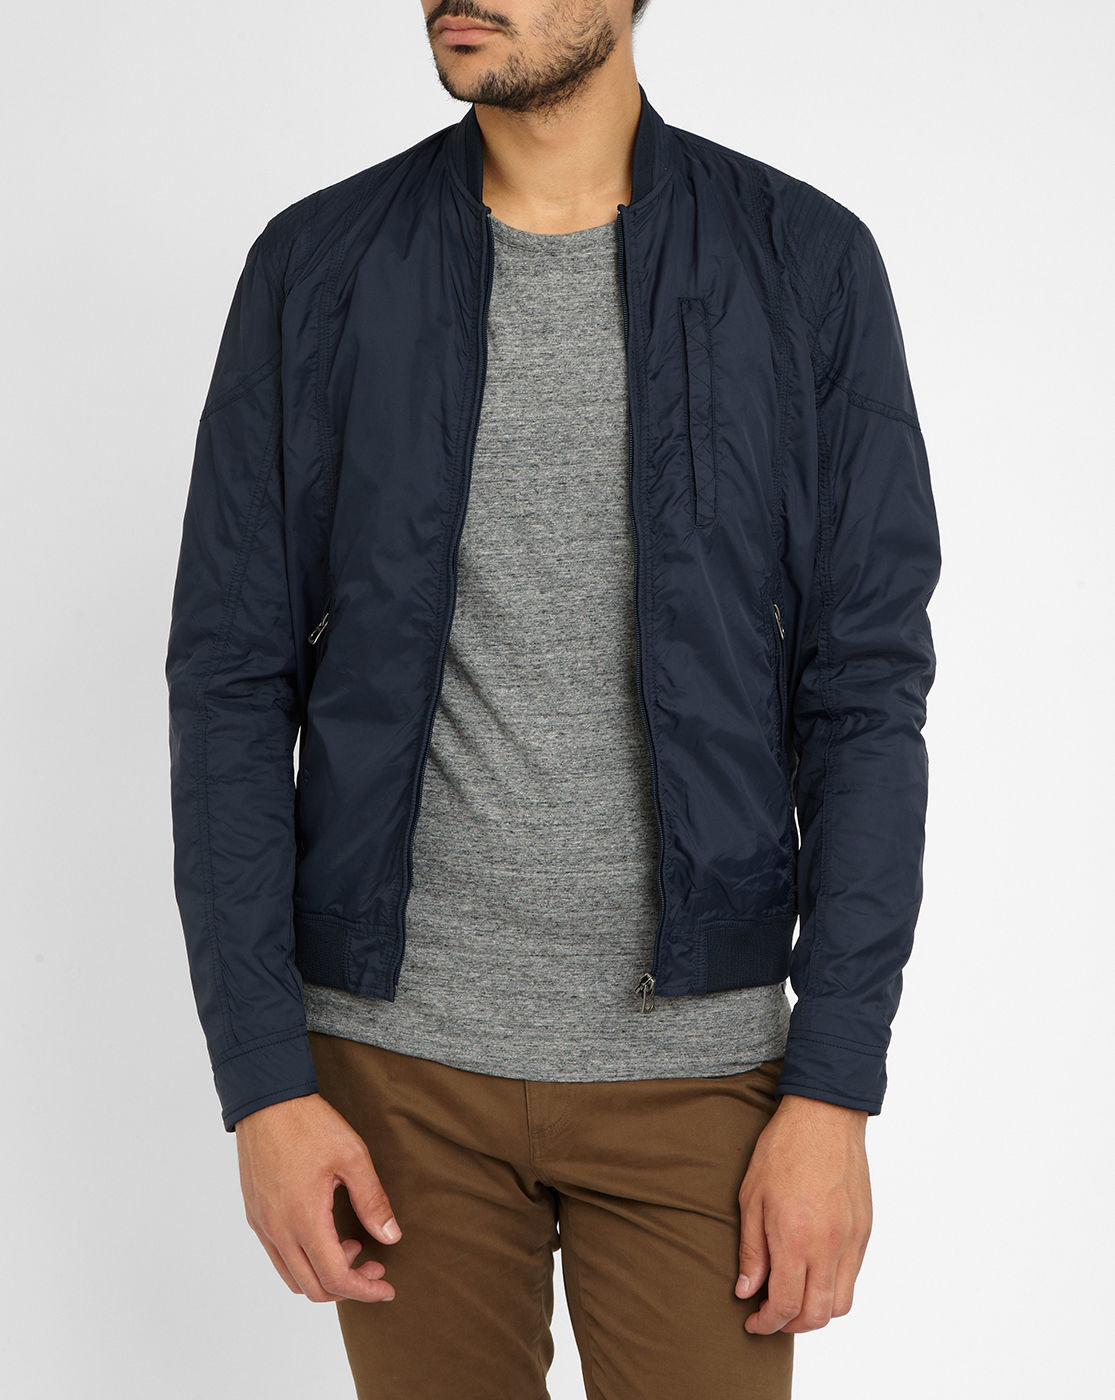 jack jones navy bomber jacket in blue for men lyst. Black Bedroom Furniture Sets. Home Design Ideas